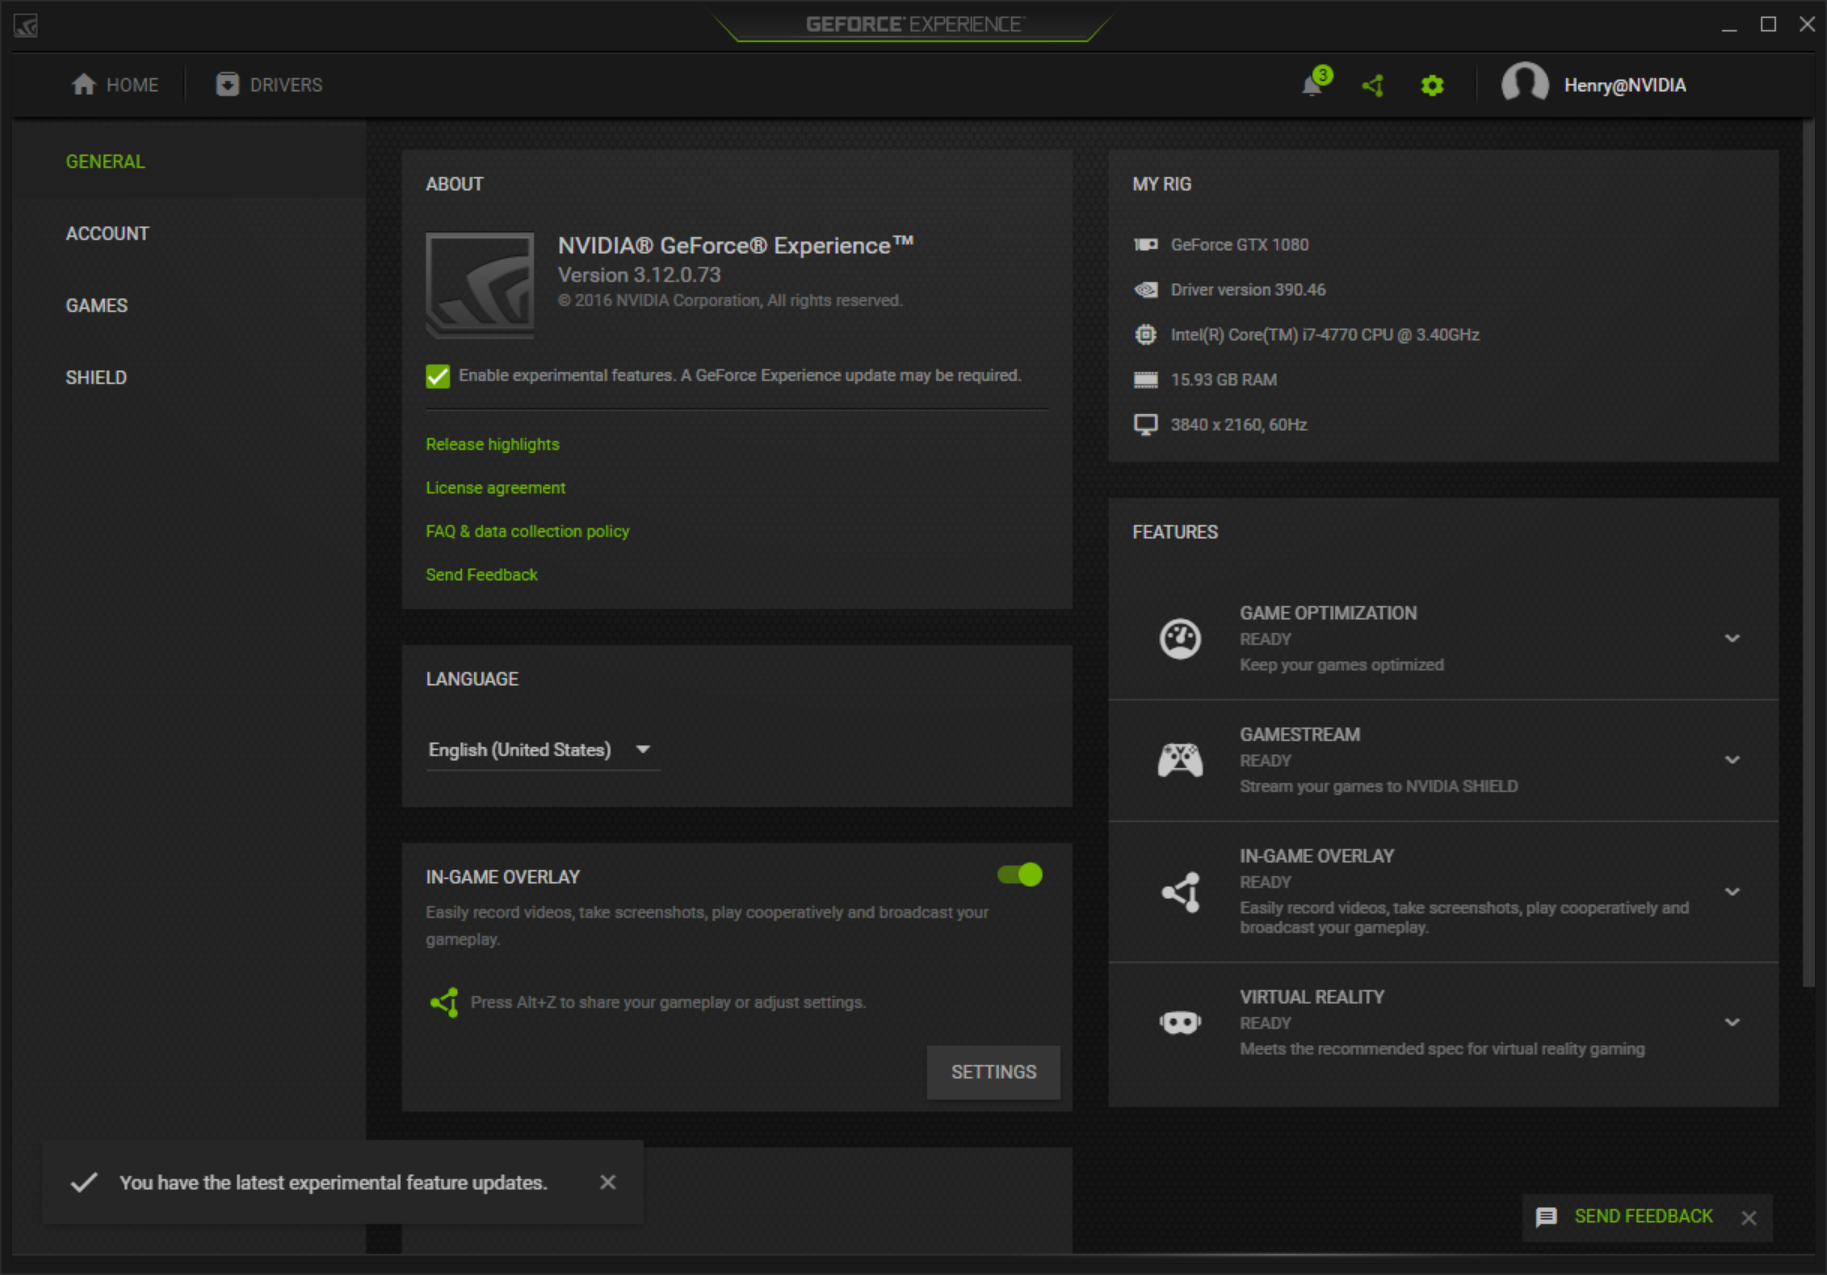 GeForce Experience At CES 2018: New Ways To Customize, Capture And